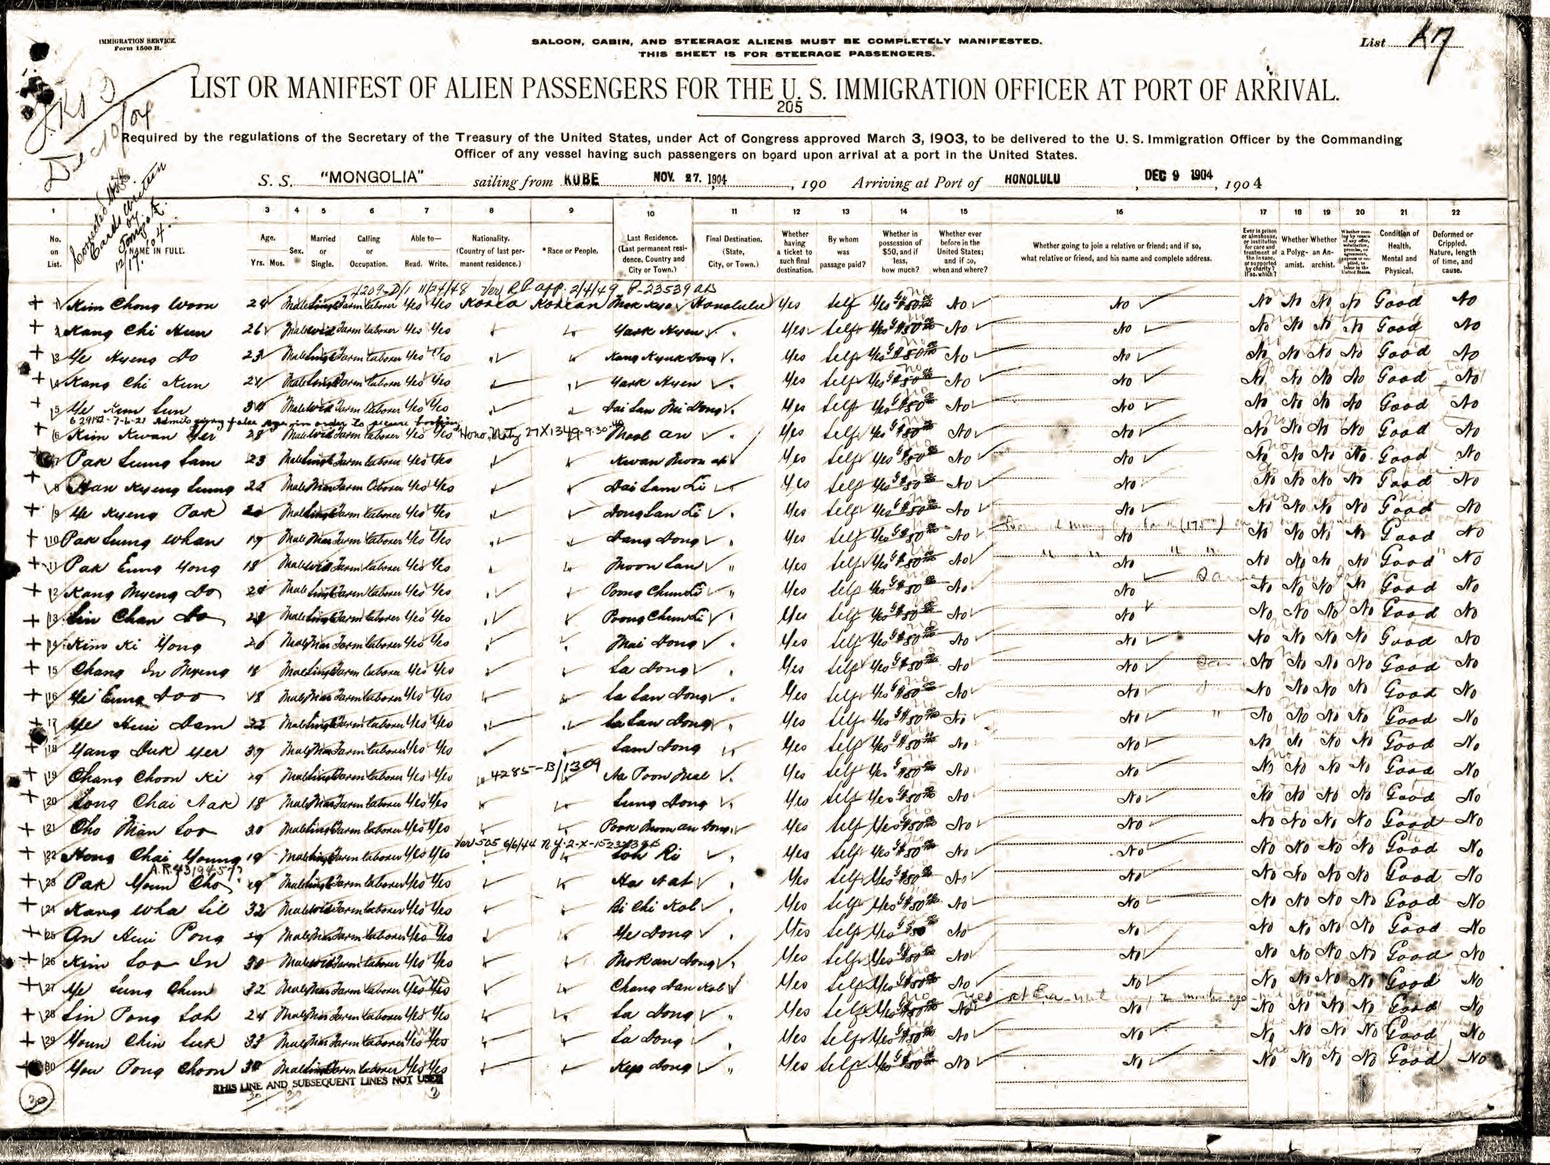 Manifest of the S.S. Mongolia December 9, 1904